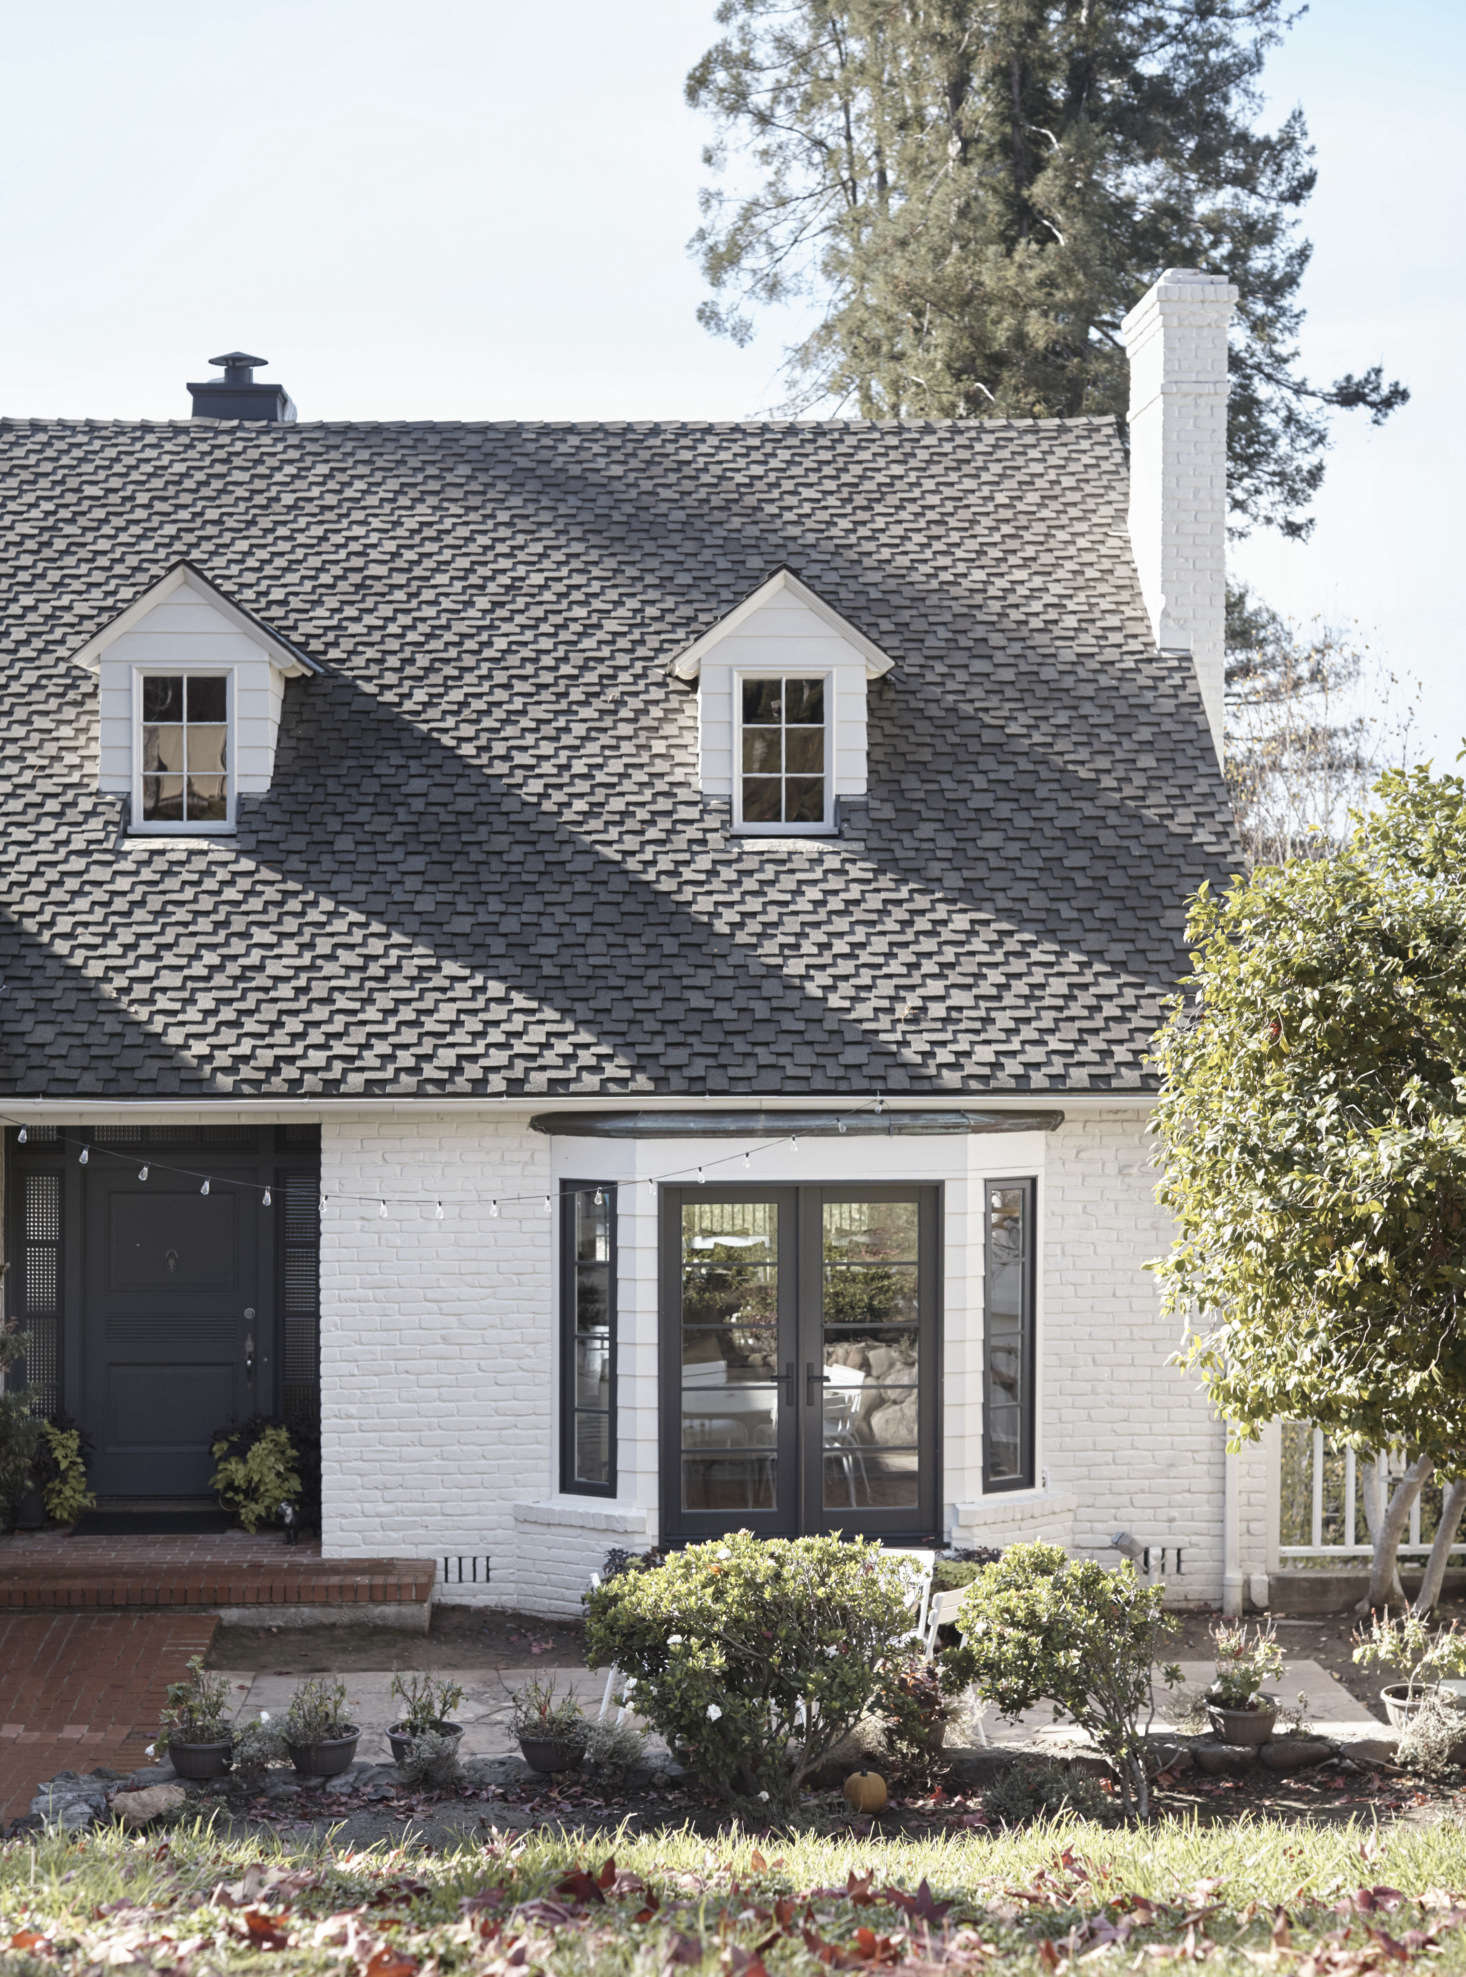 Suburban-Staid No More: A Stylish New California-French Look for a